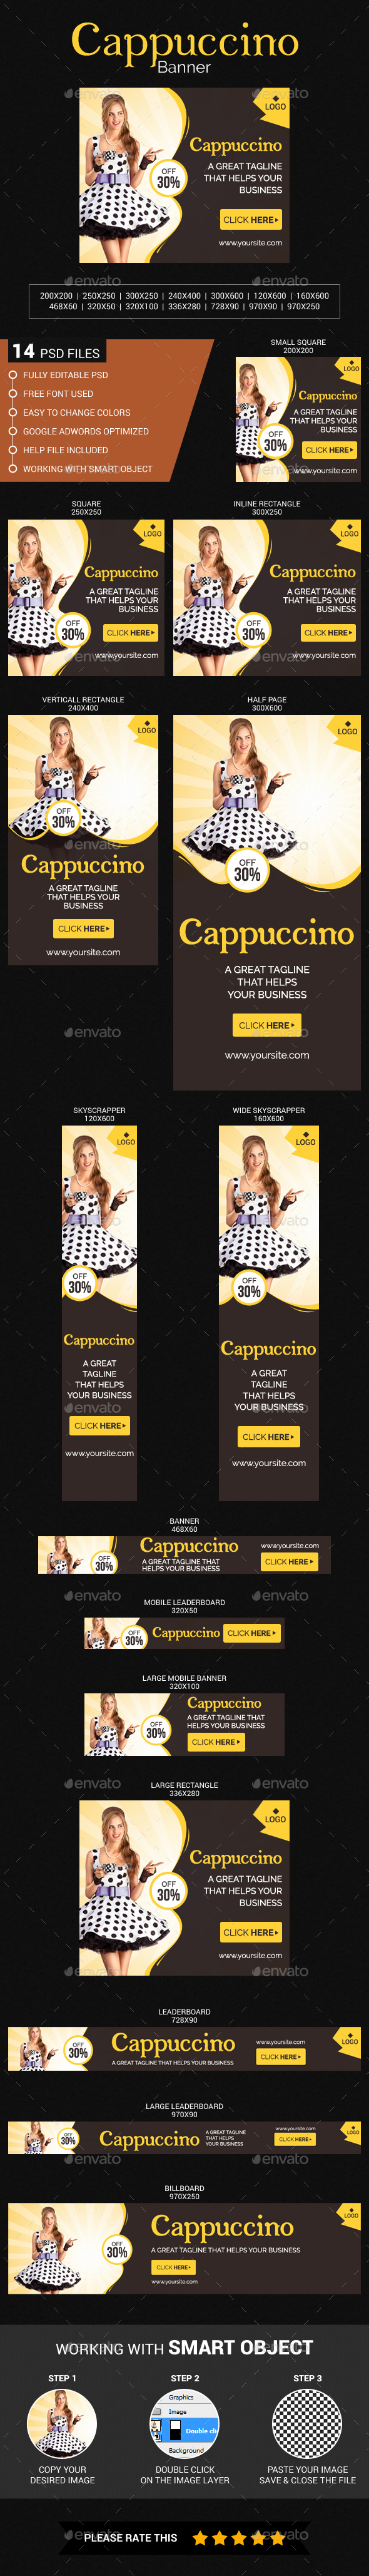 Cappuccino Banner - Banners & Ads Web Elements